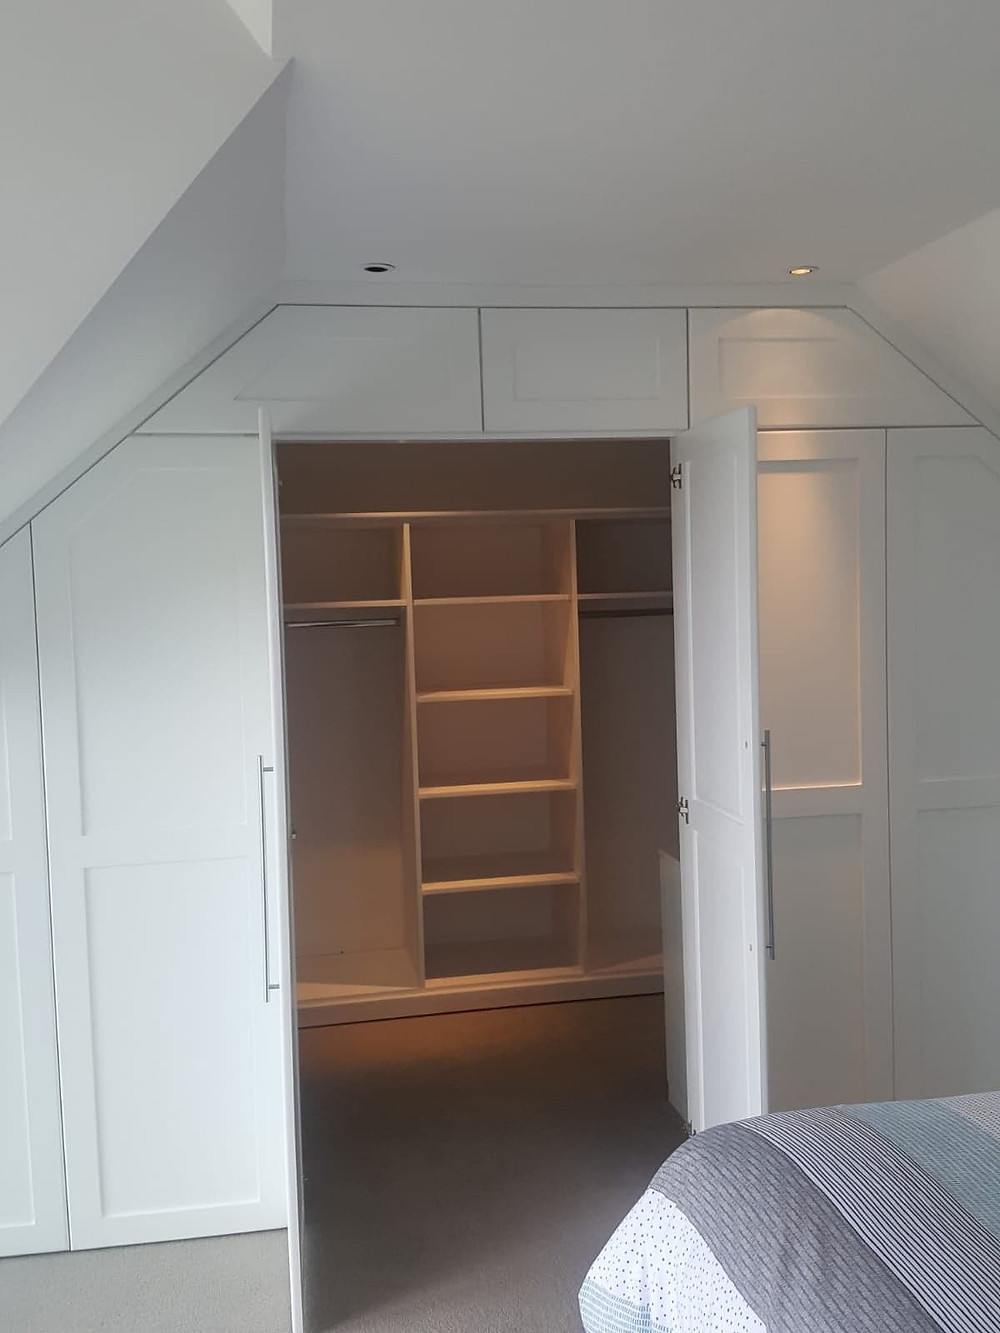 secret room inside a wardrobe